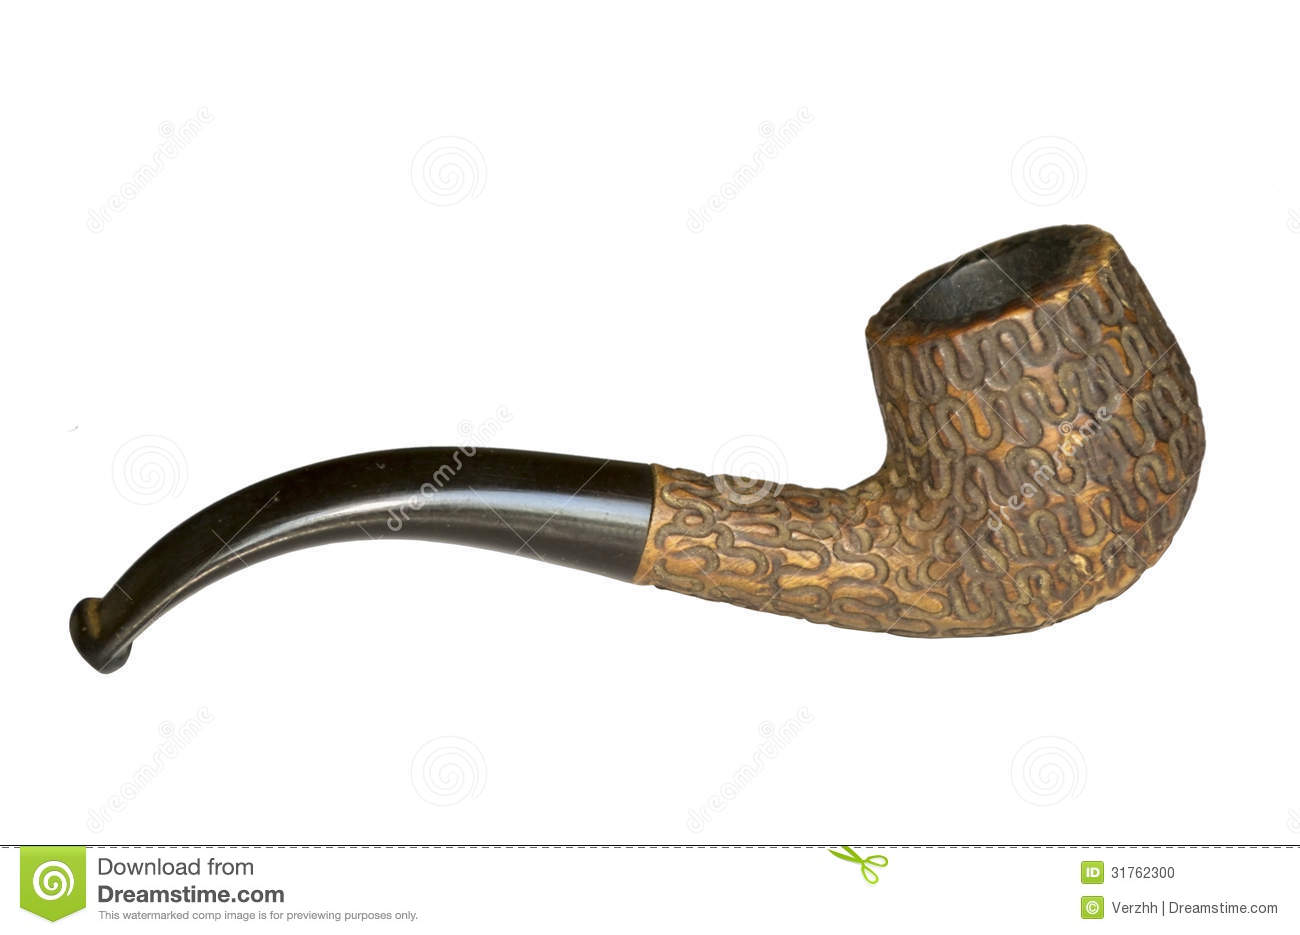 Tobacco pipe stock photo image of antique tobacco for What are old plumbing pipes made of